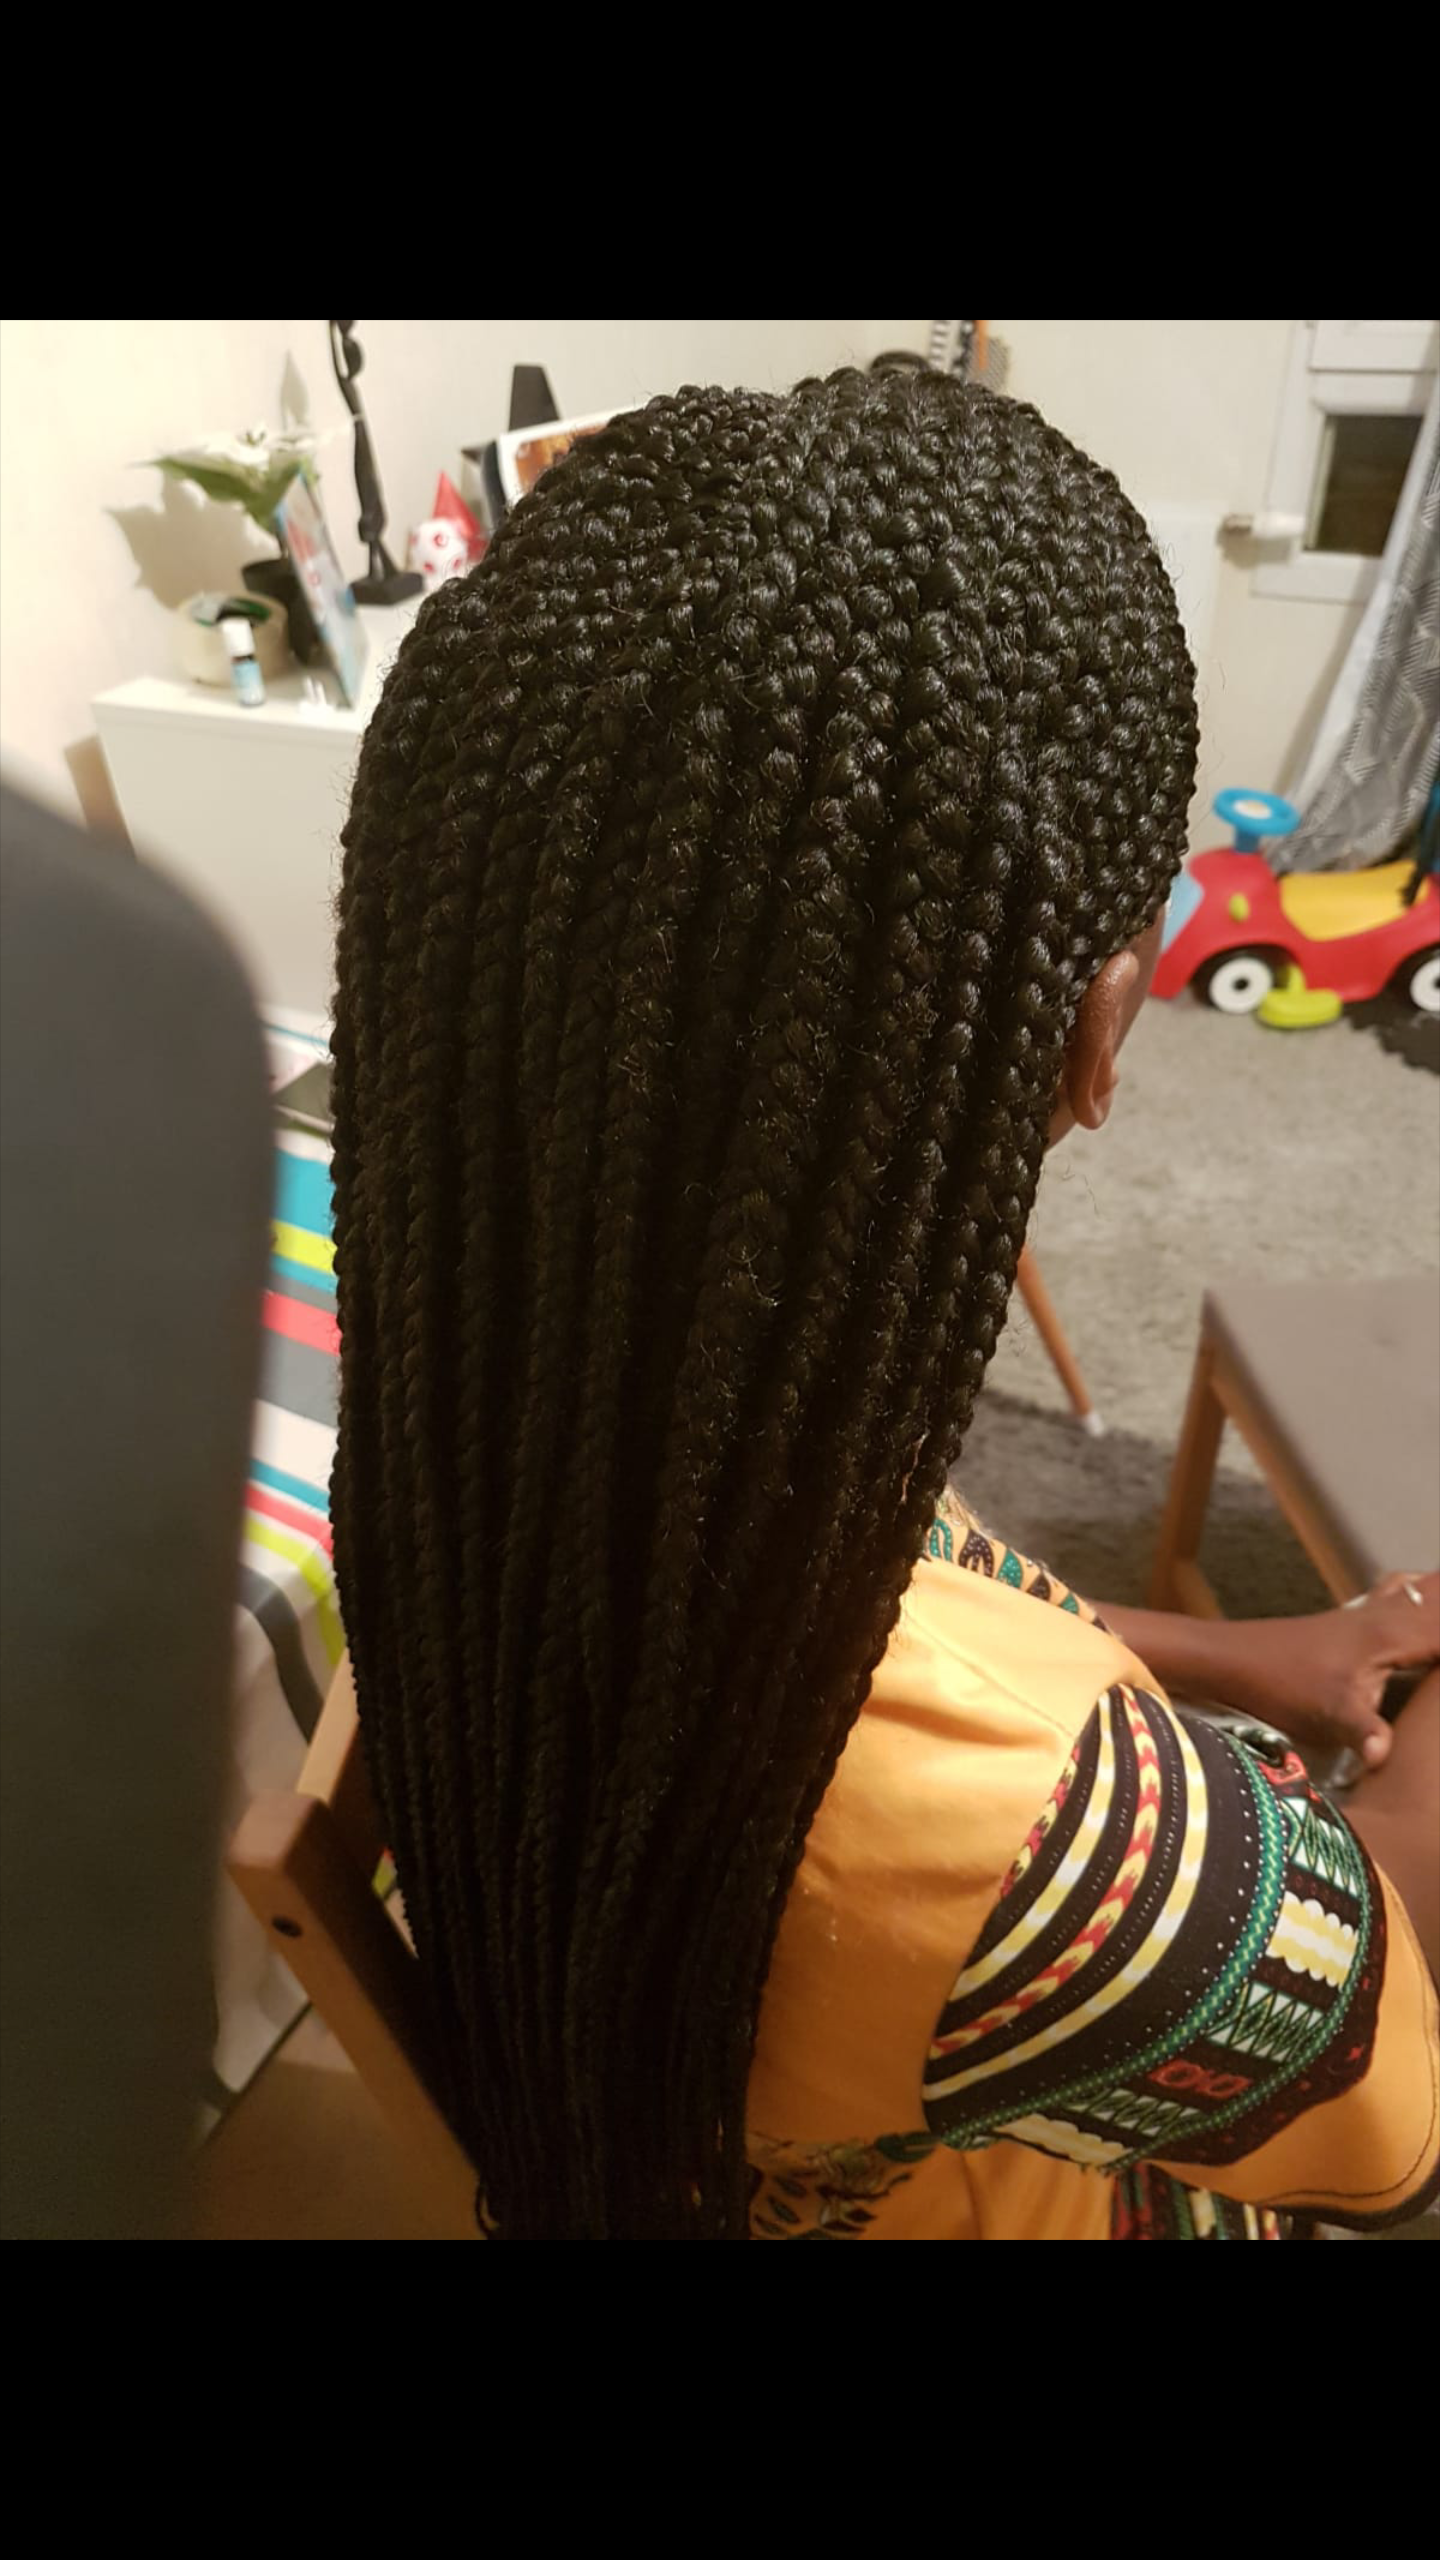 salon de coiffure afro tresse tresses box braids crochet braids vanilles tissages paris 75 77 78 91 92 93 94 95 FEFQSROH